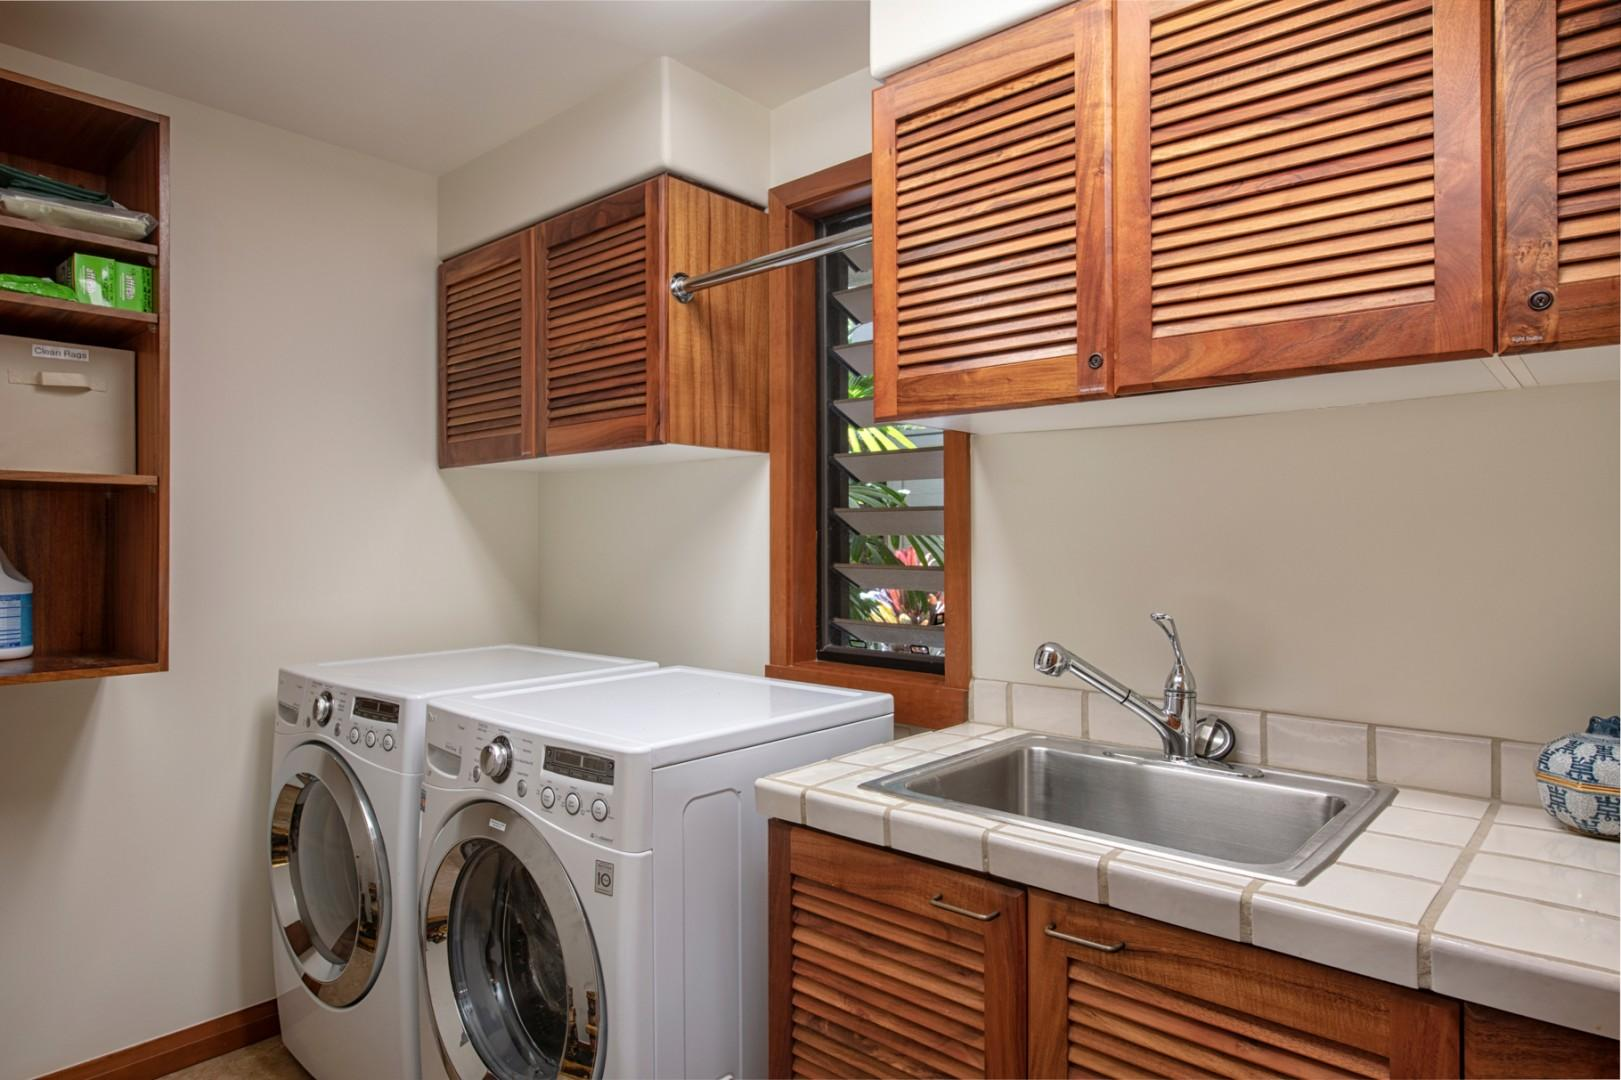 Dedicated laundry room.